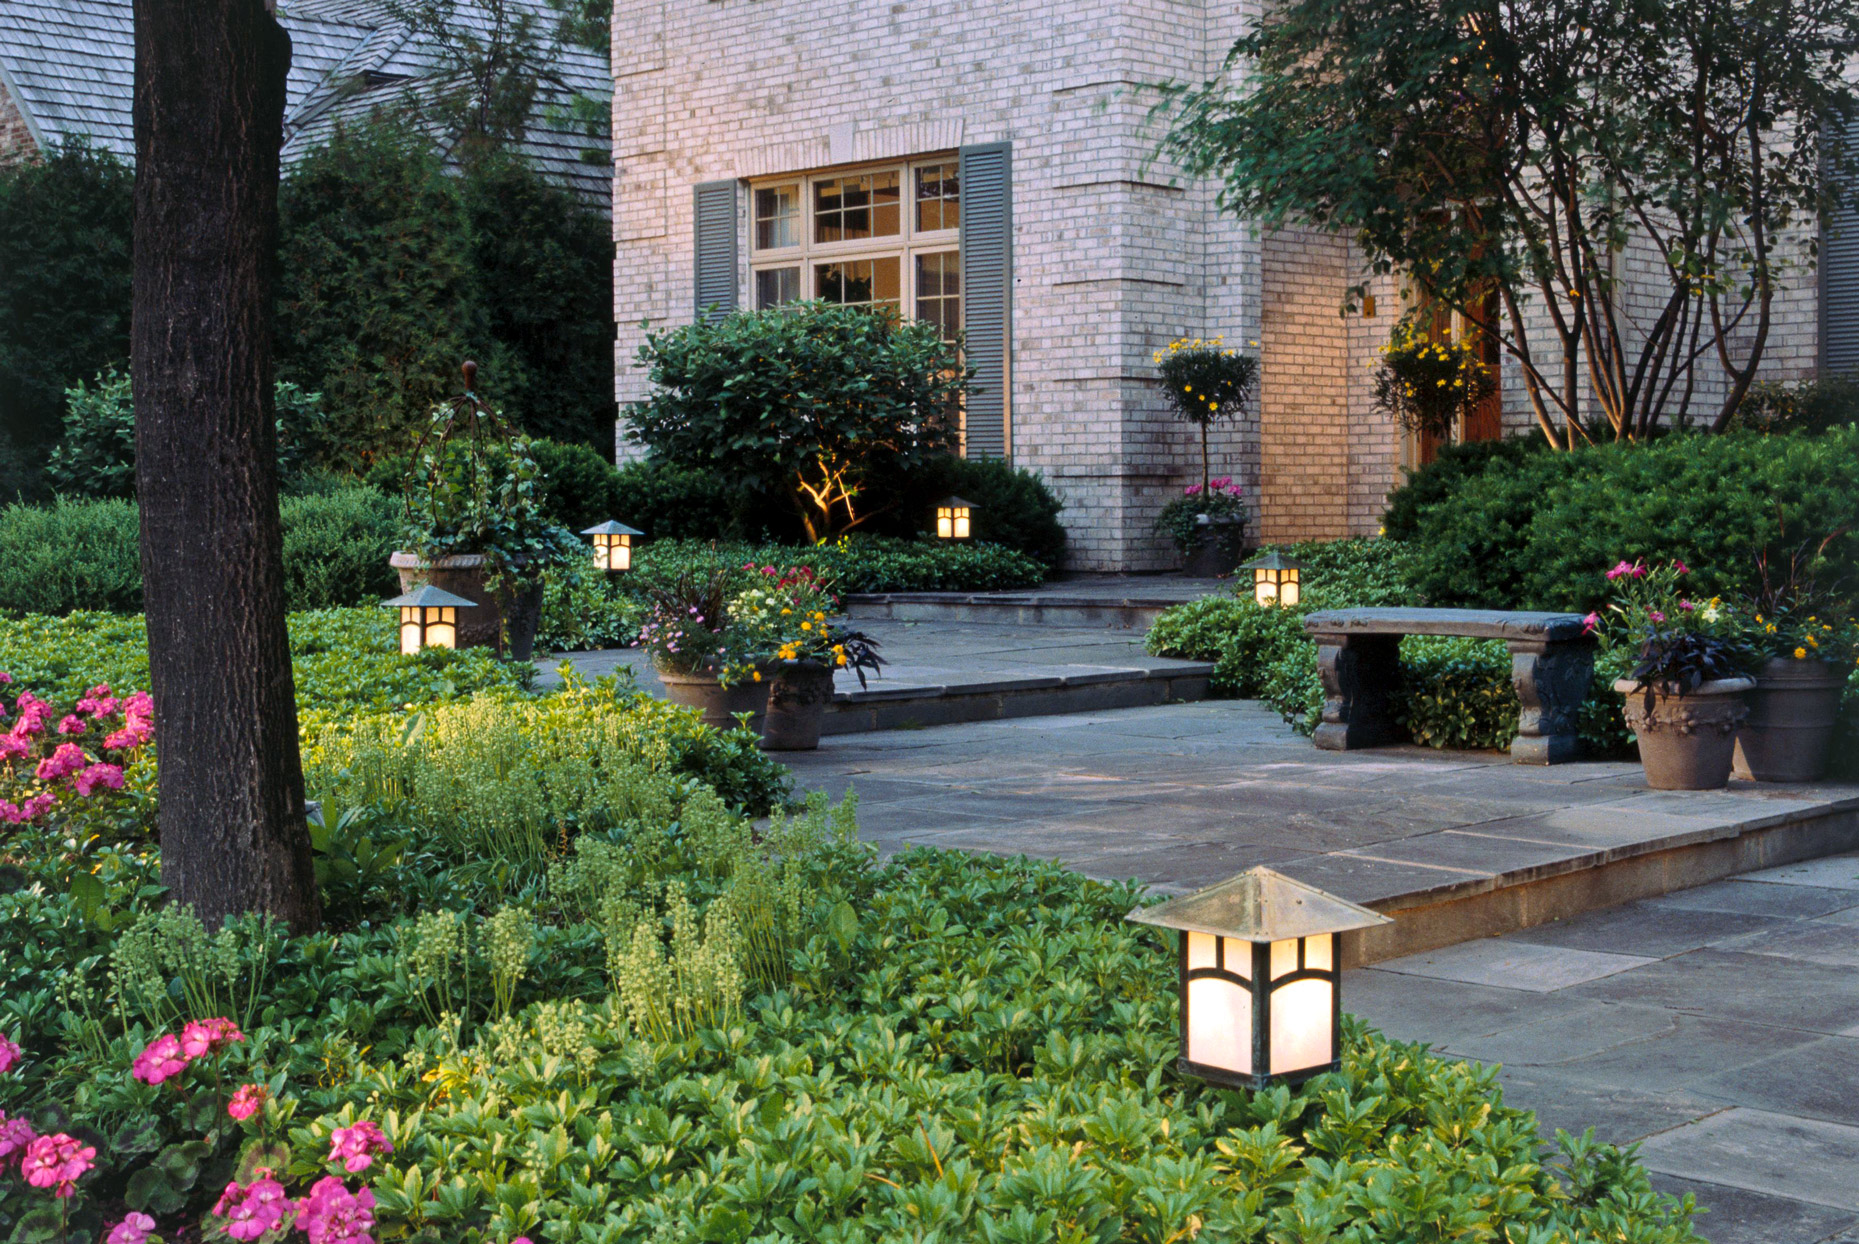 Curb Appeal in a Day: Install Outdoor Lighting